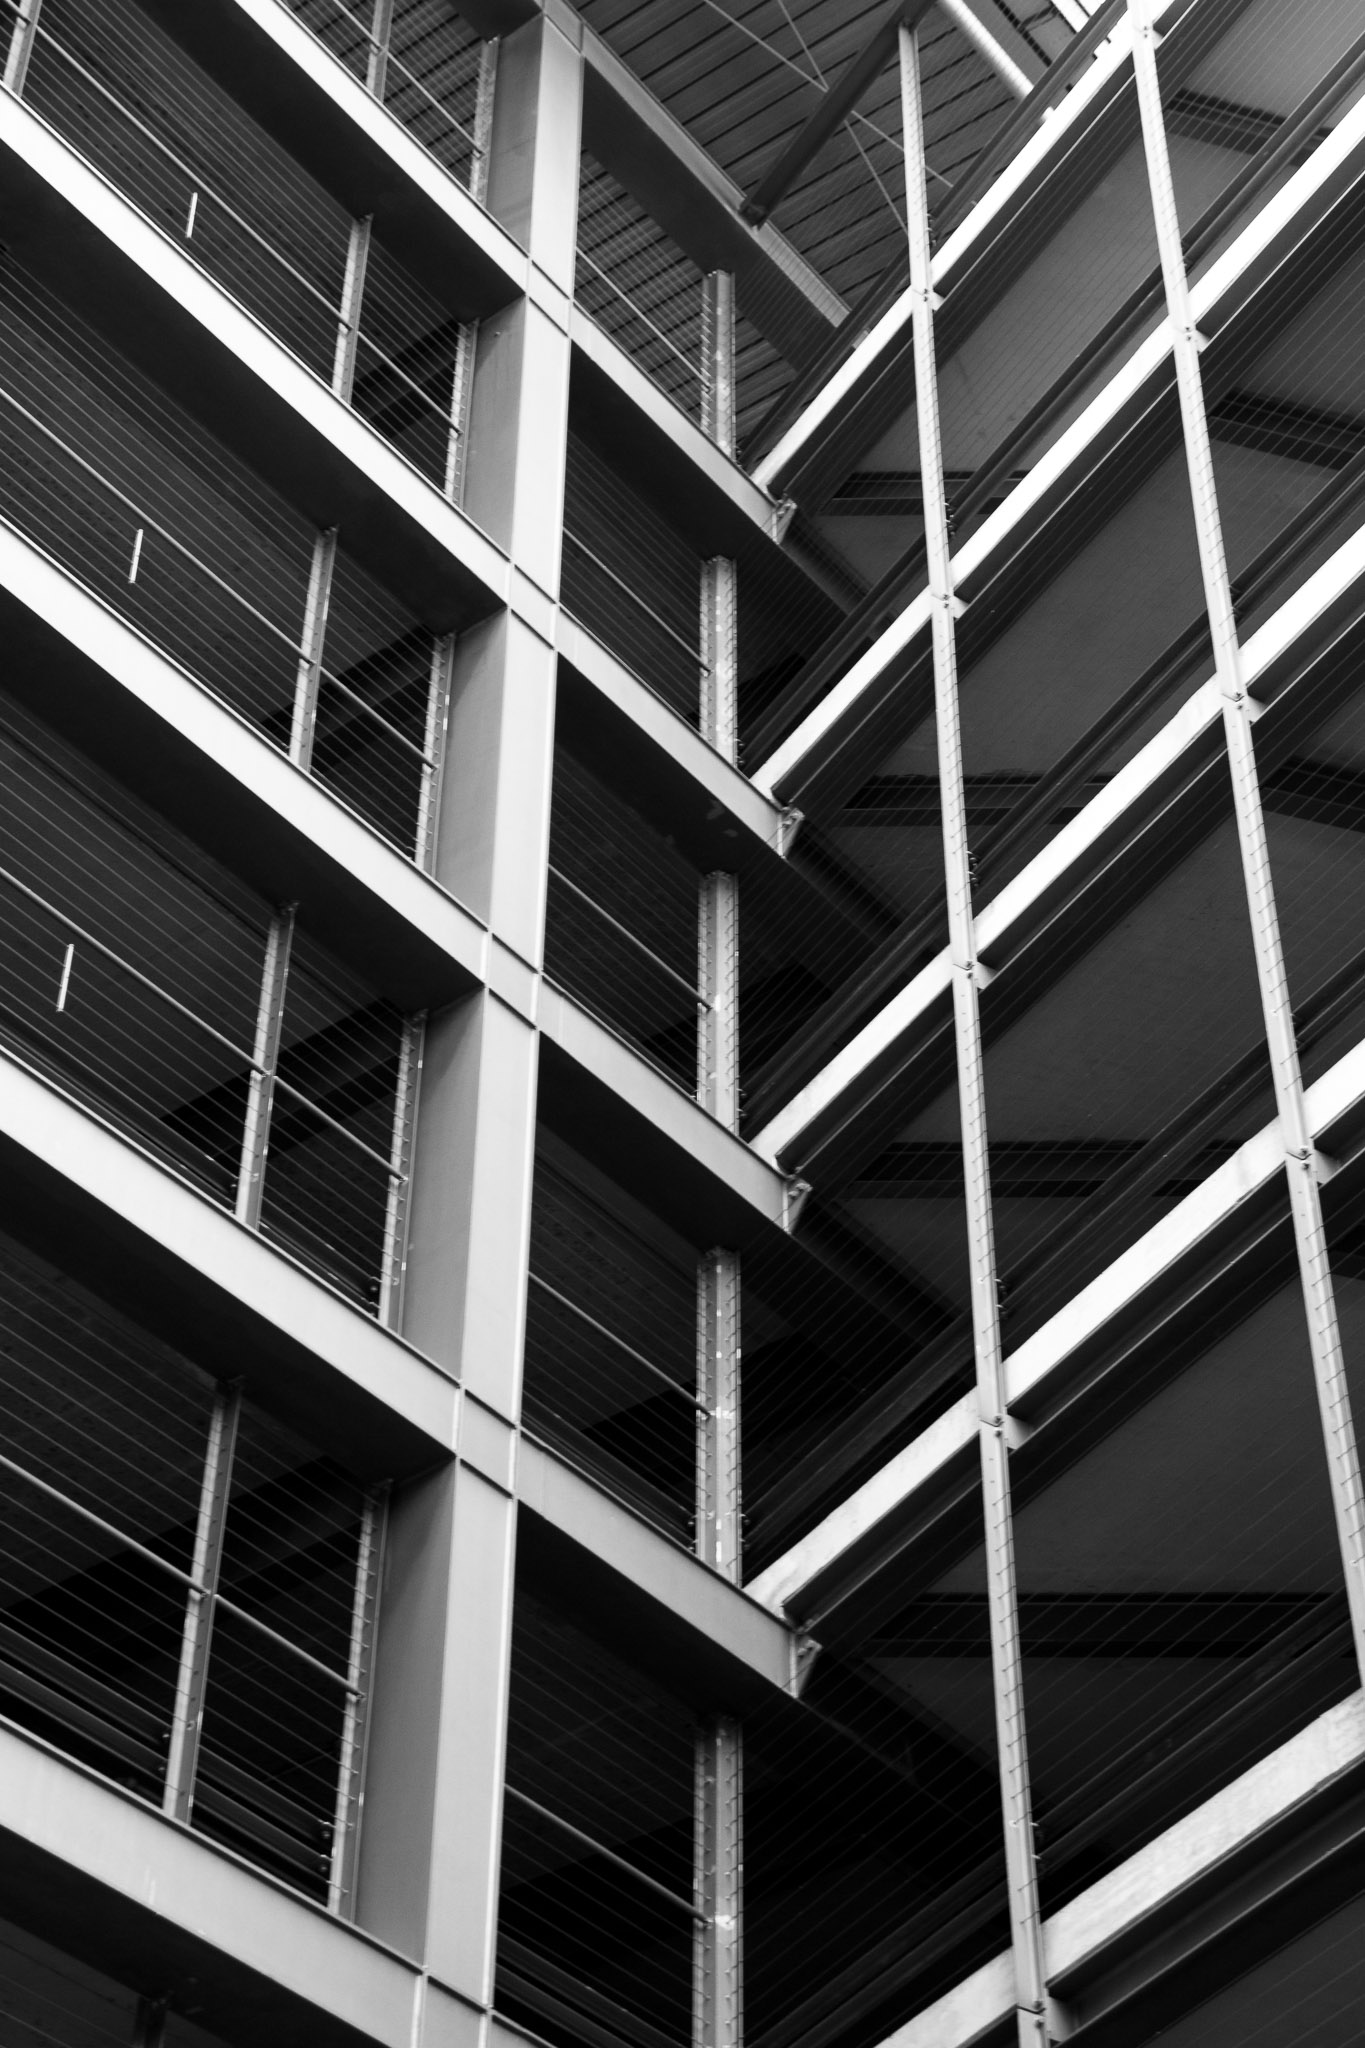 -Structural Parking Deck- Canon EOS 60D (Sigma 17-70mm F2.8-4 DC Macro C, 37 mm, f/8.0, 1/25s, ISO400)